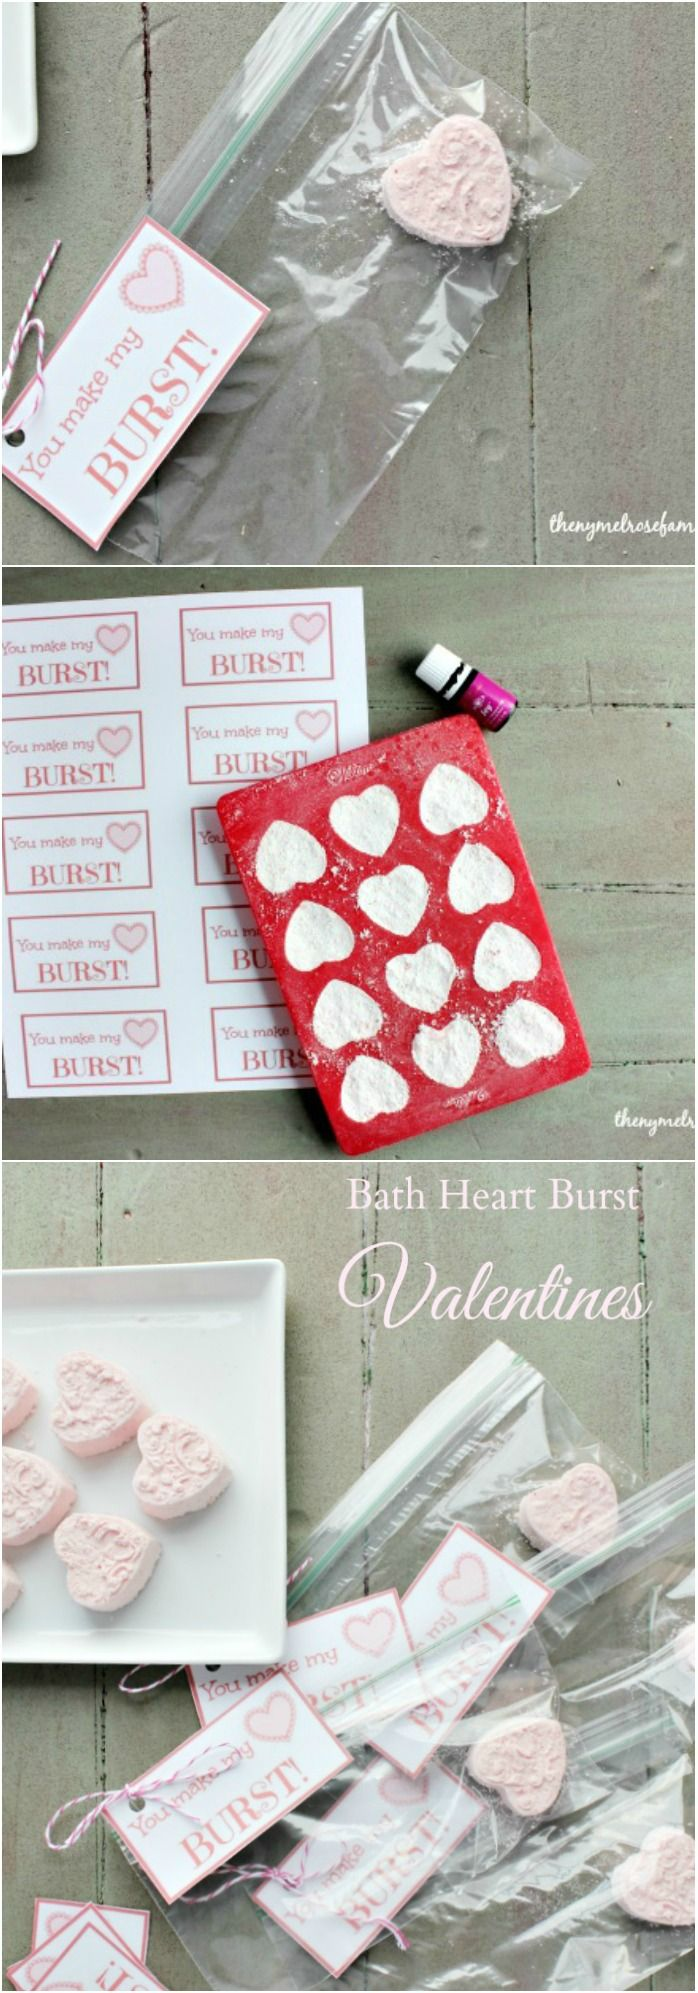 Bath Heart Burst Valentines with Free Printable Tags are perfect creative valentines.